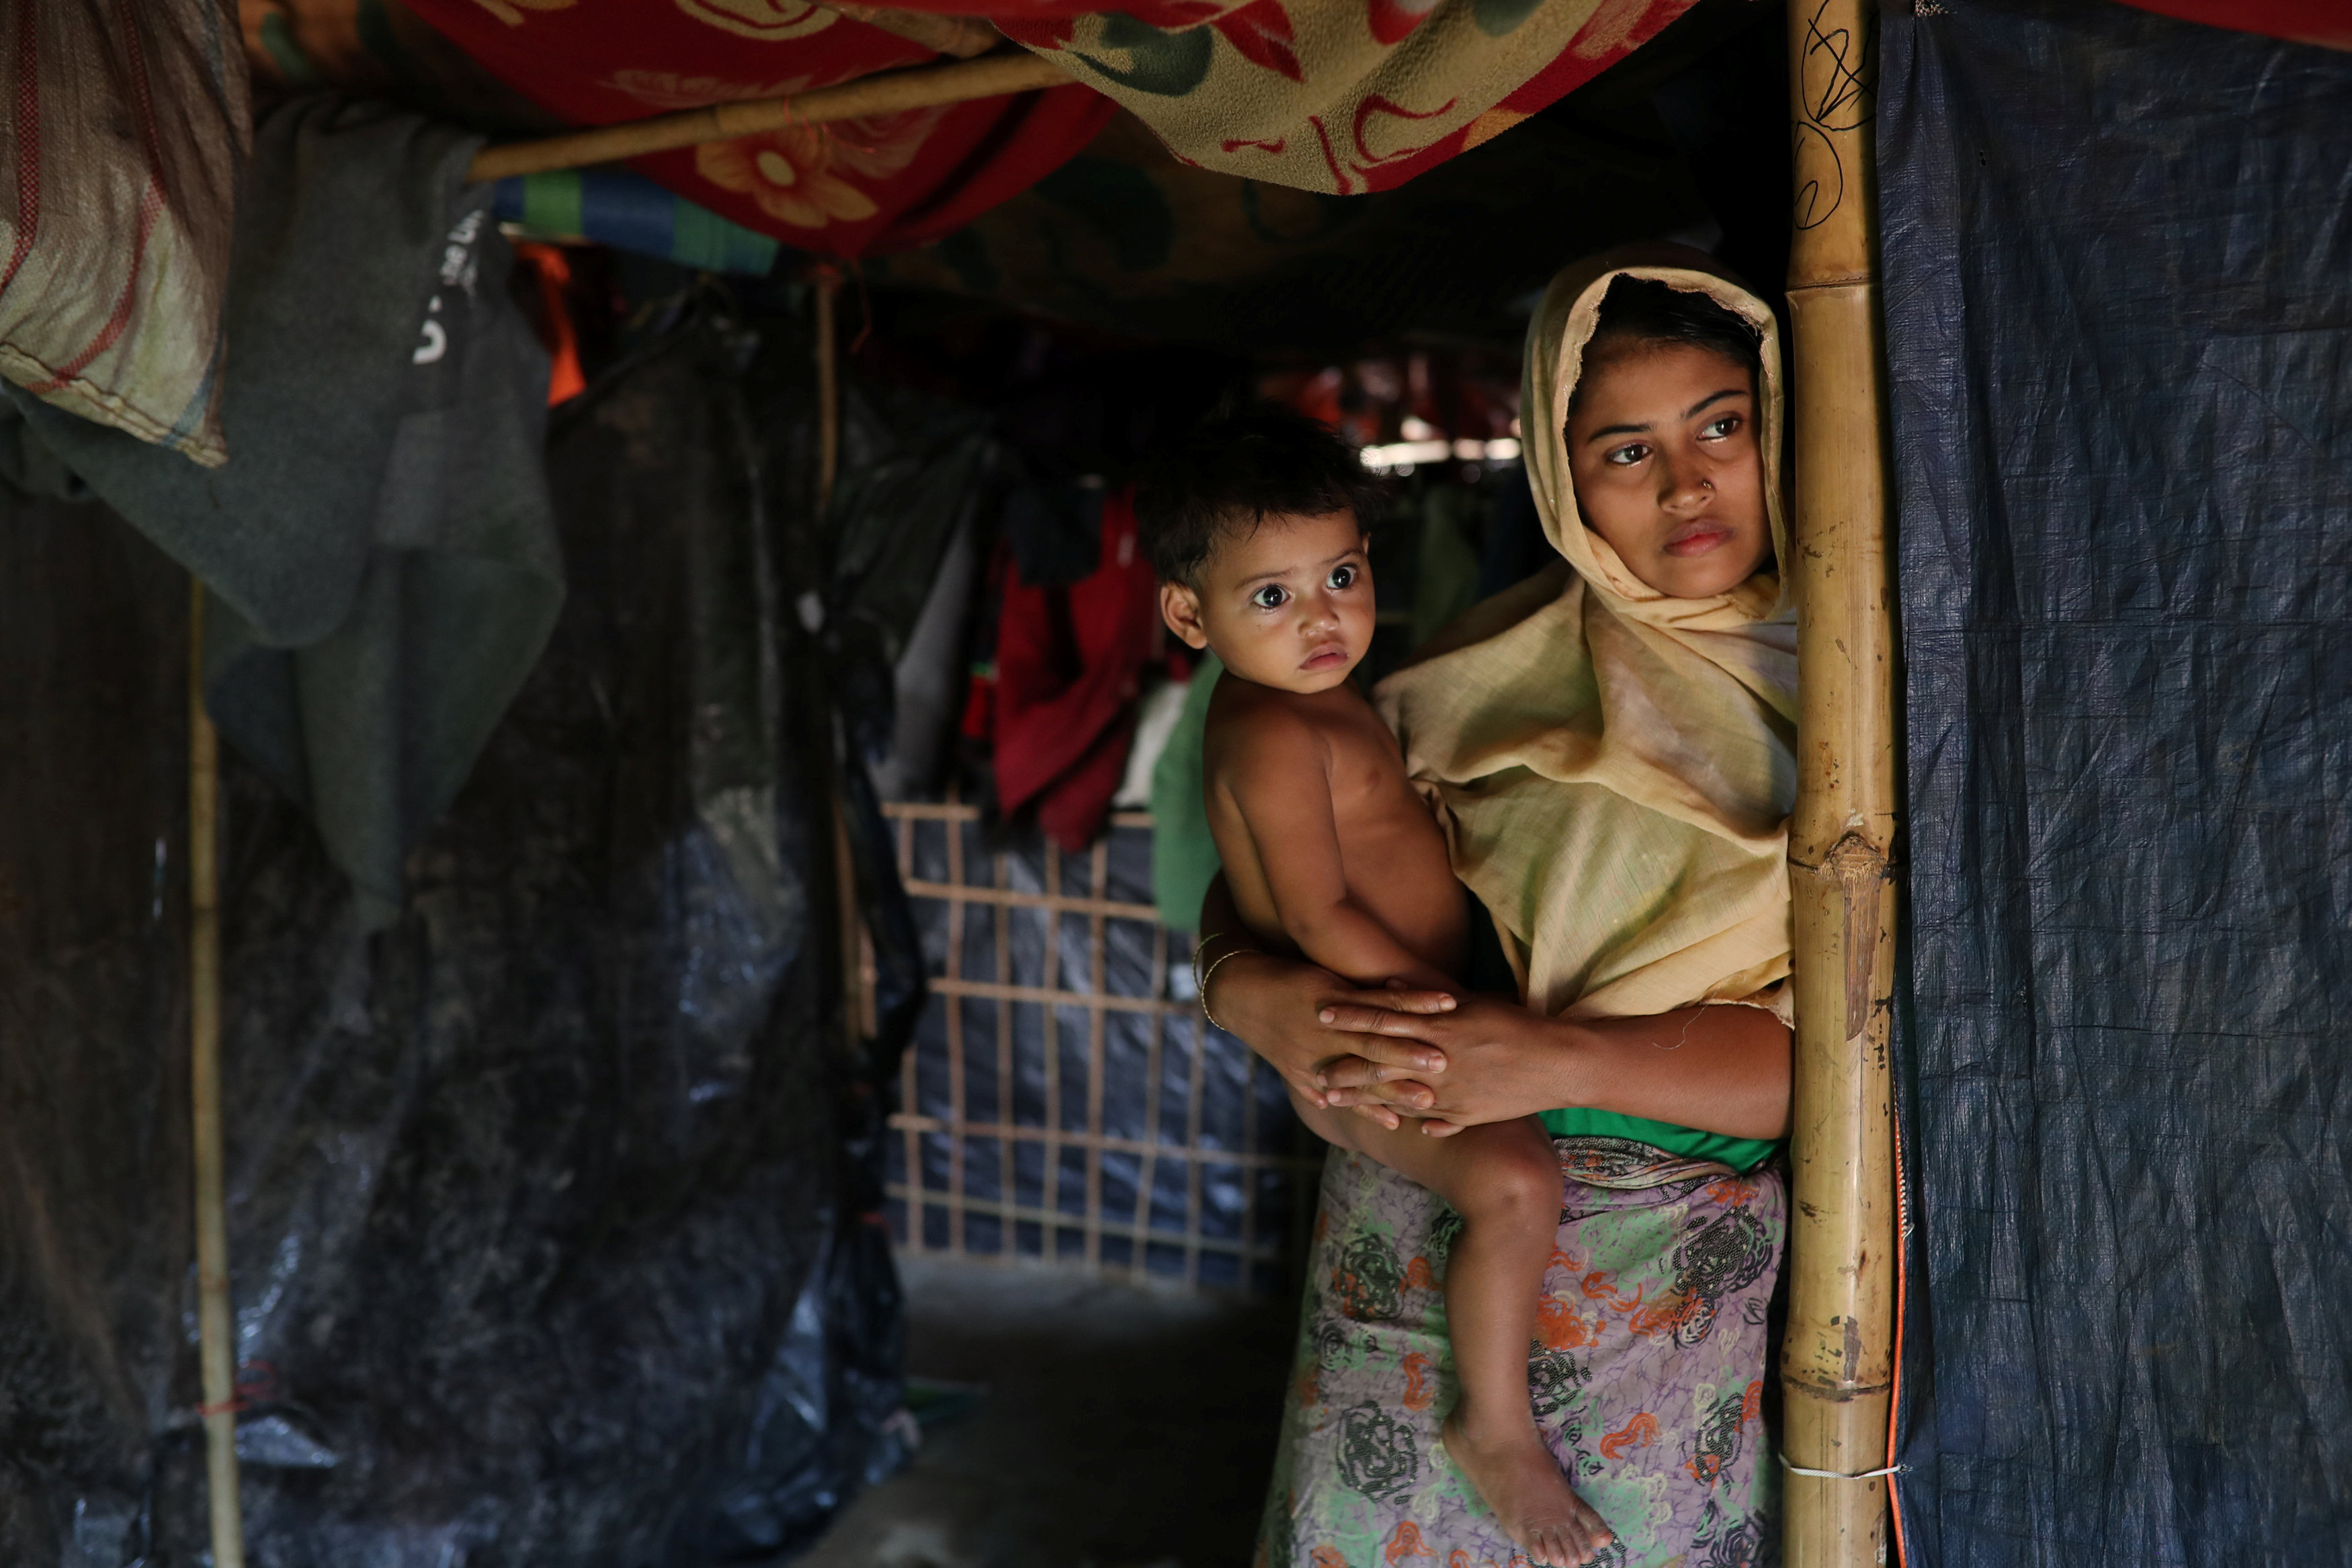 Rehana Khatun, whose husband Mohammed Nur was among 10 Rohingya men killed by Myanmar security forces and Buddhist villagers on September 2, 2017, poses for a picture with her child at Kutupalong camp in Cox's Bazar, Bangladesh, January 19, 2018. Picture taken January 19, 2018.